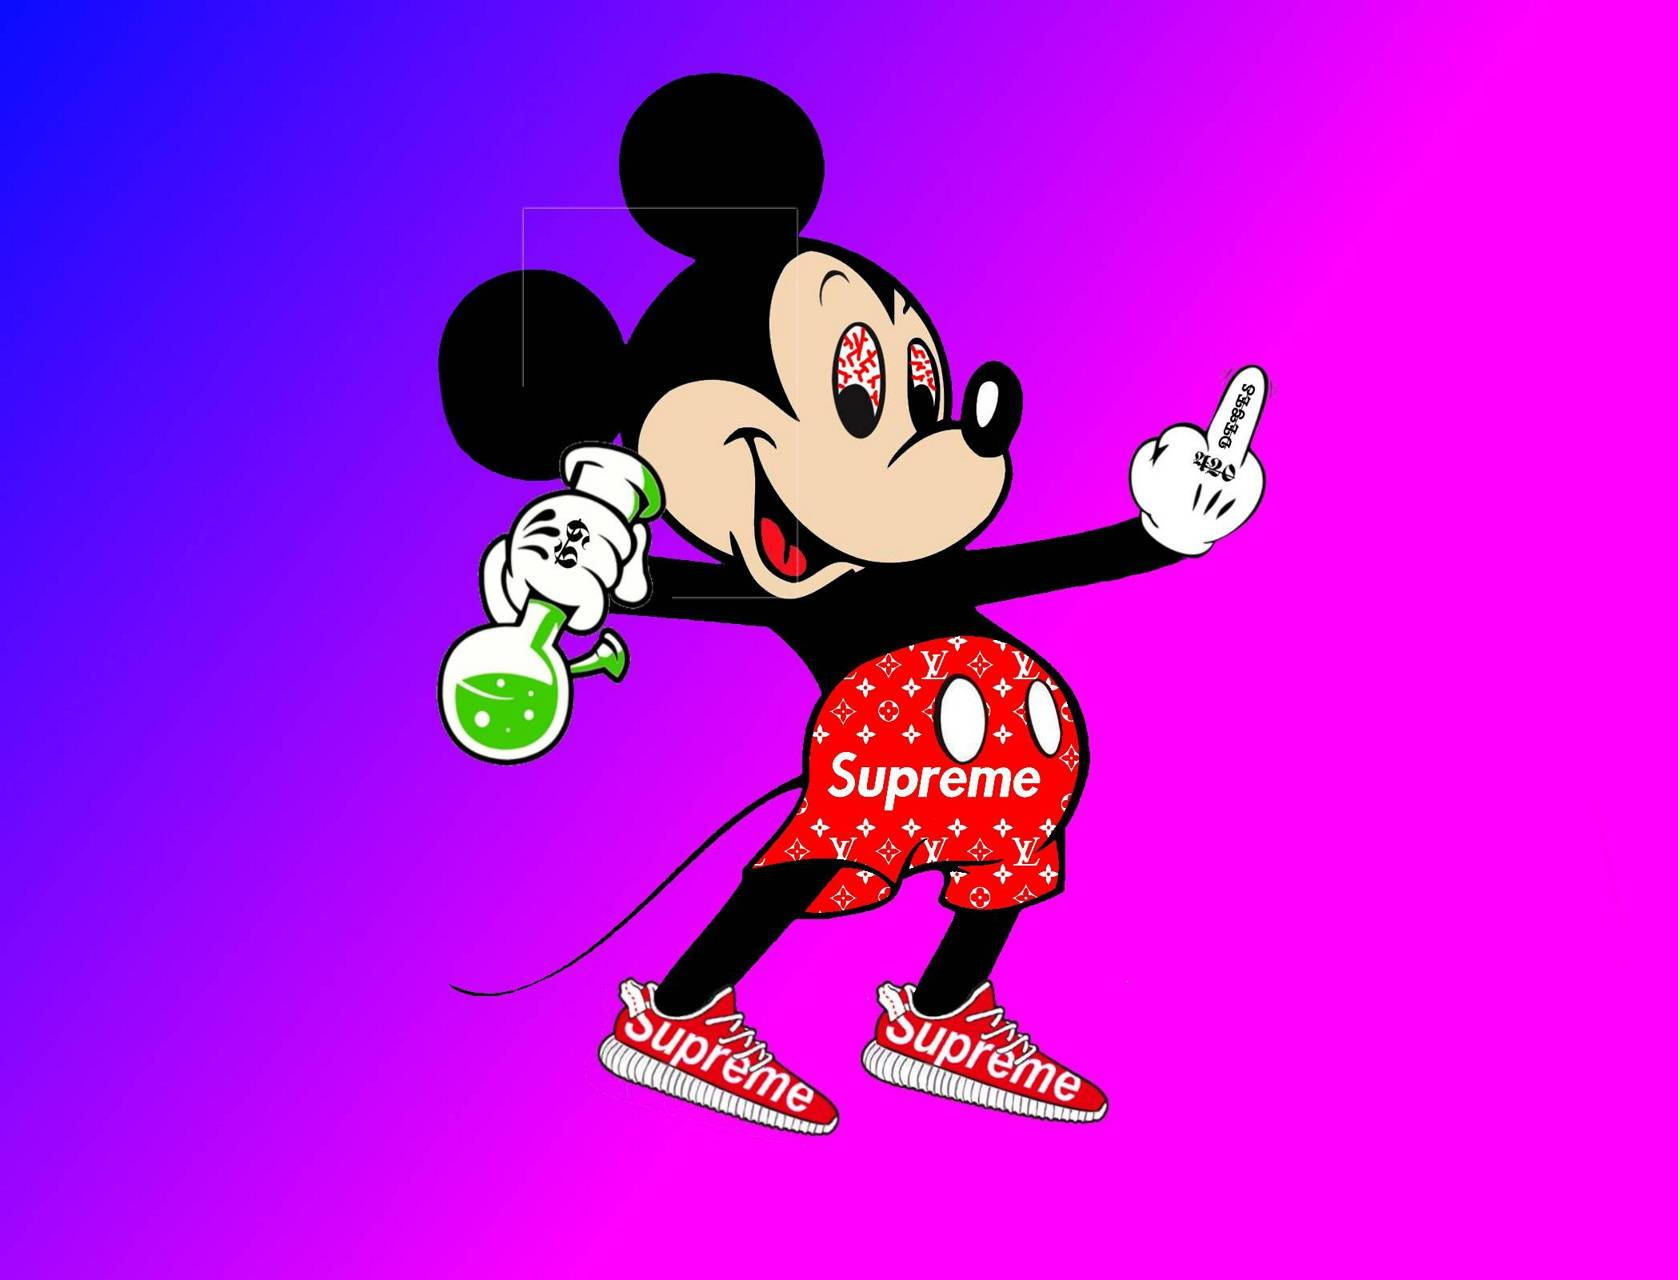 Supreme Mickey Mouse Posted By Ryan Johnson